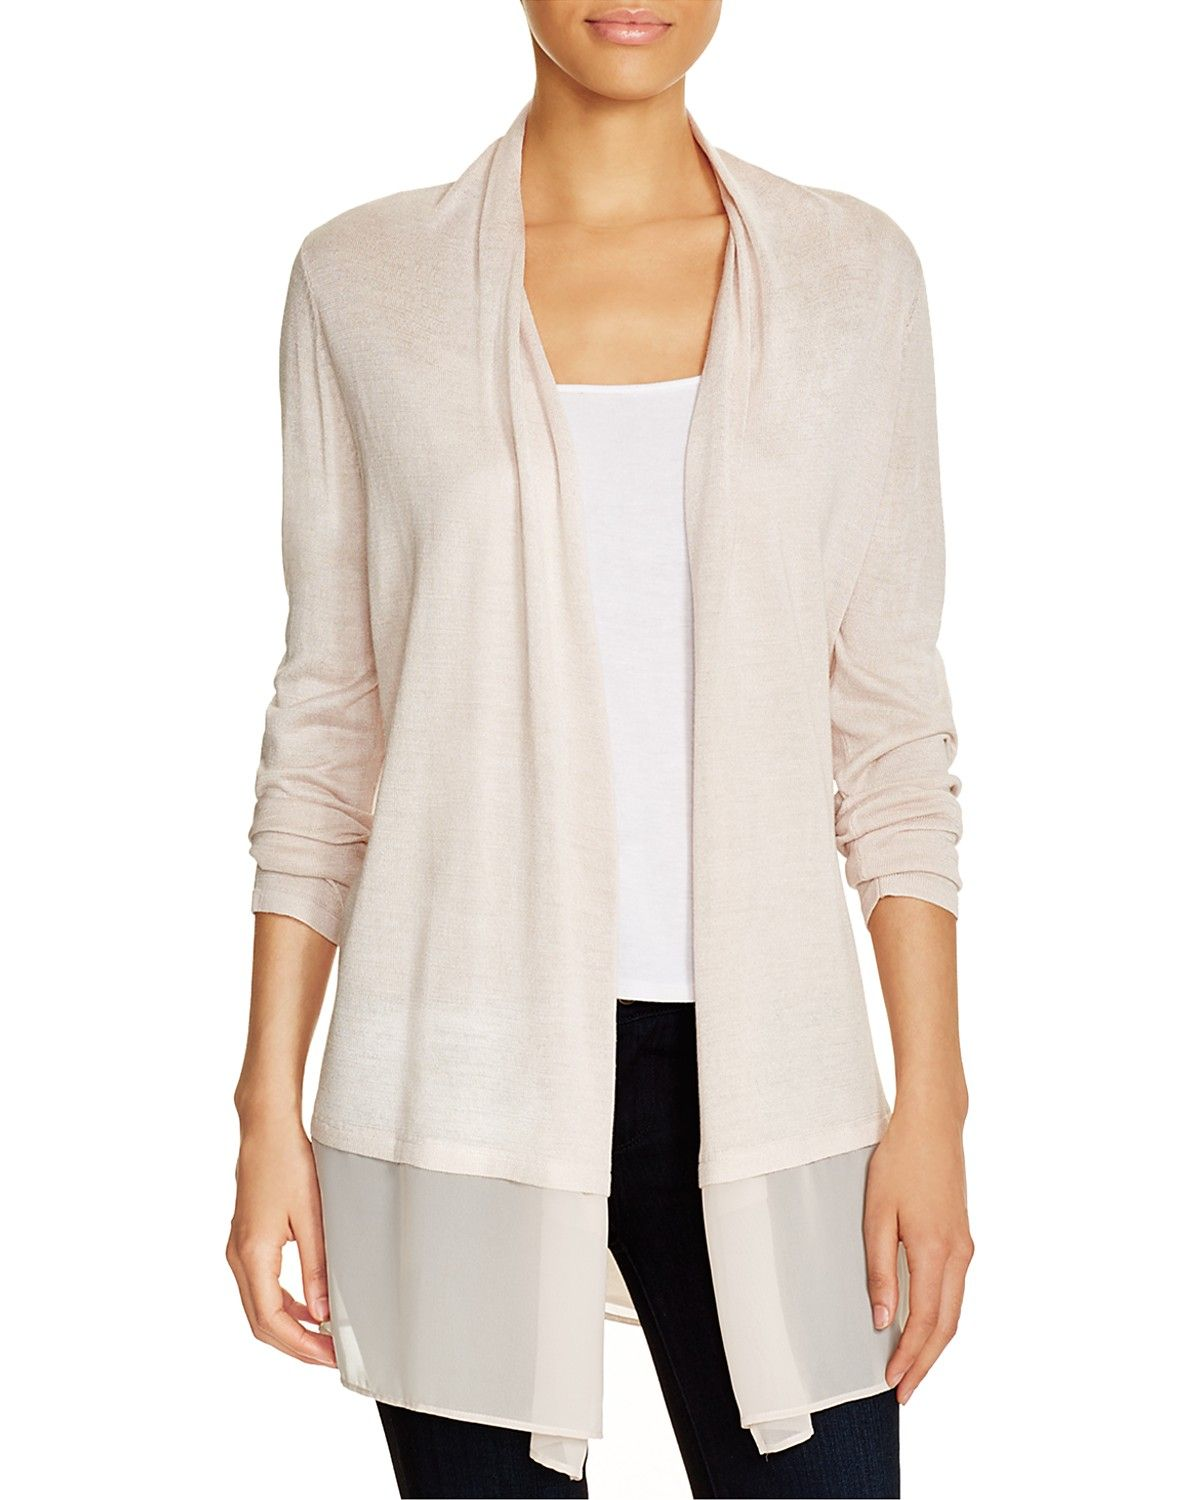 NIC ZOE Chiffon Trim Cardigan | My Style | Pinterest | Clothes and ...